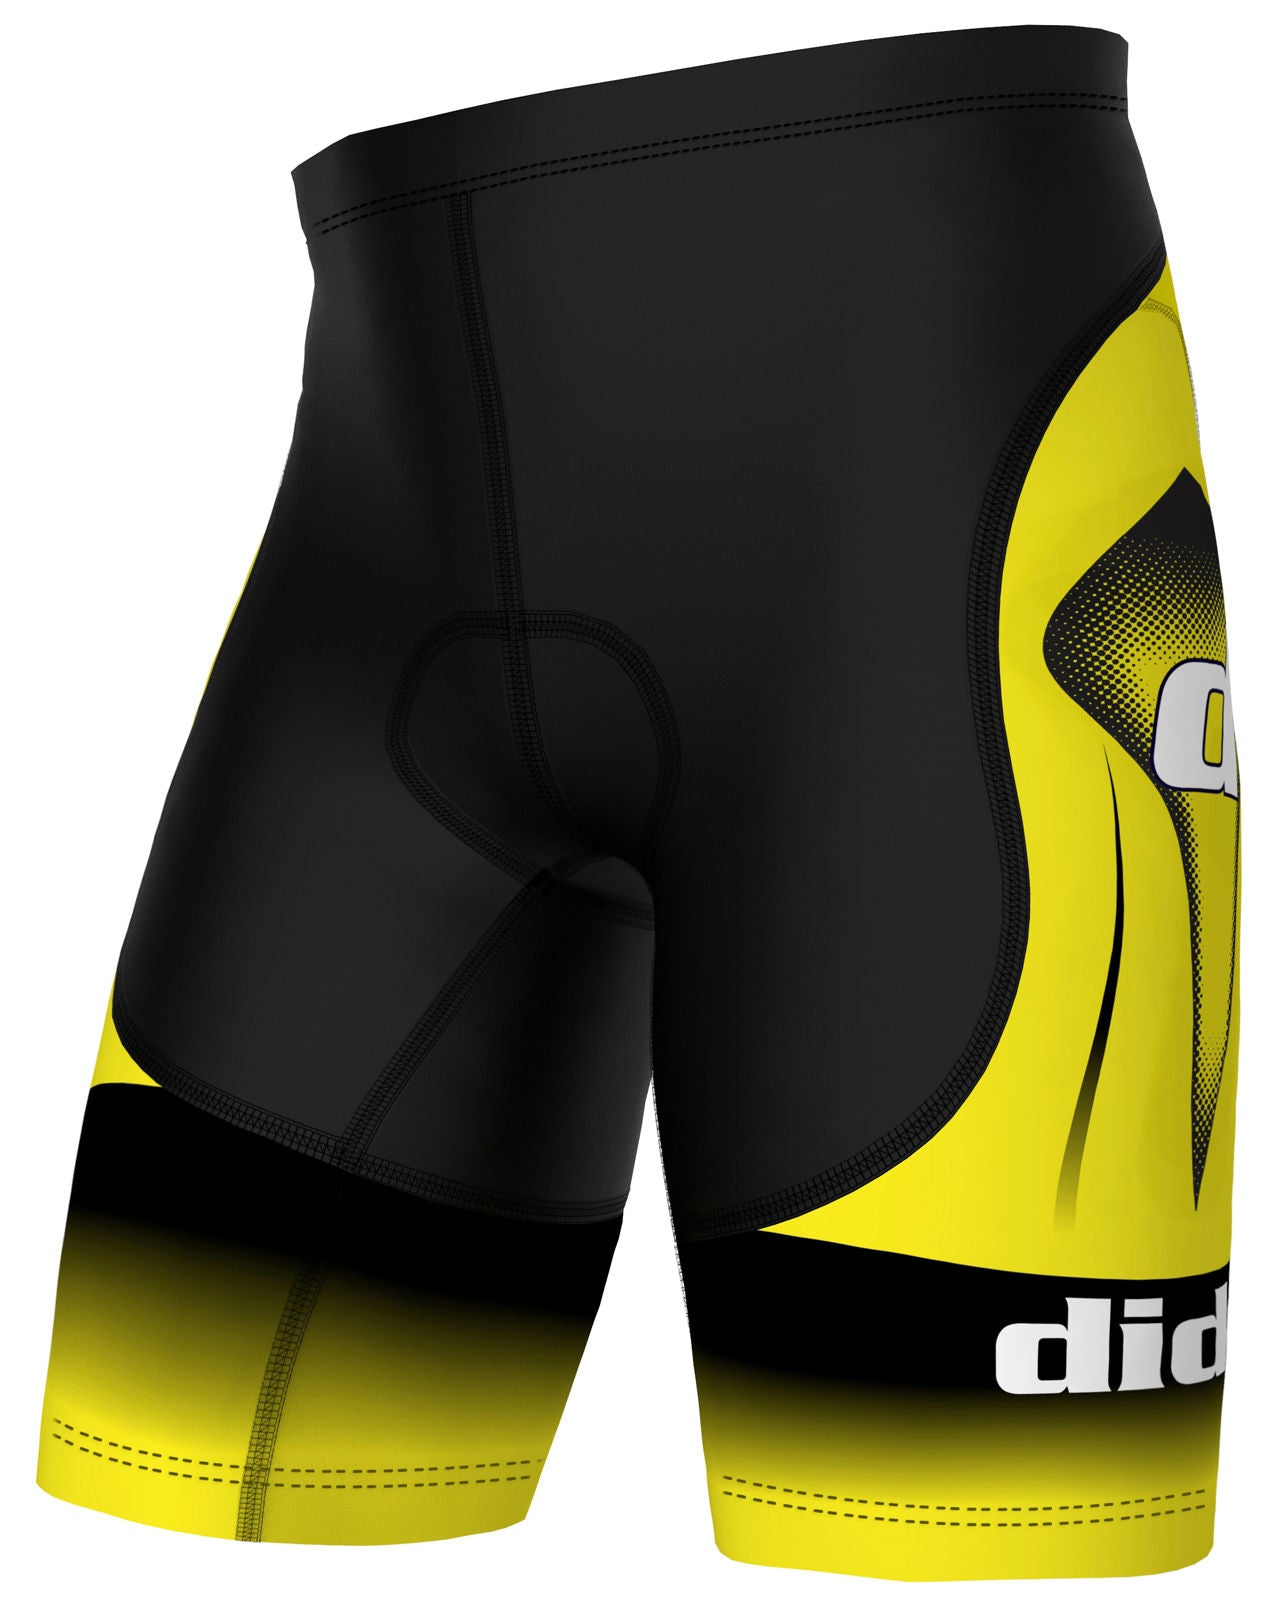 Yellow and Black Padded Cycling Shorts